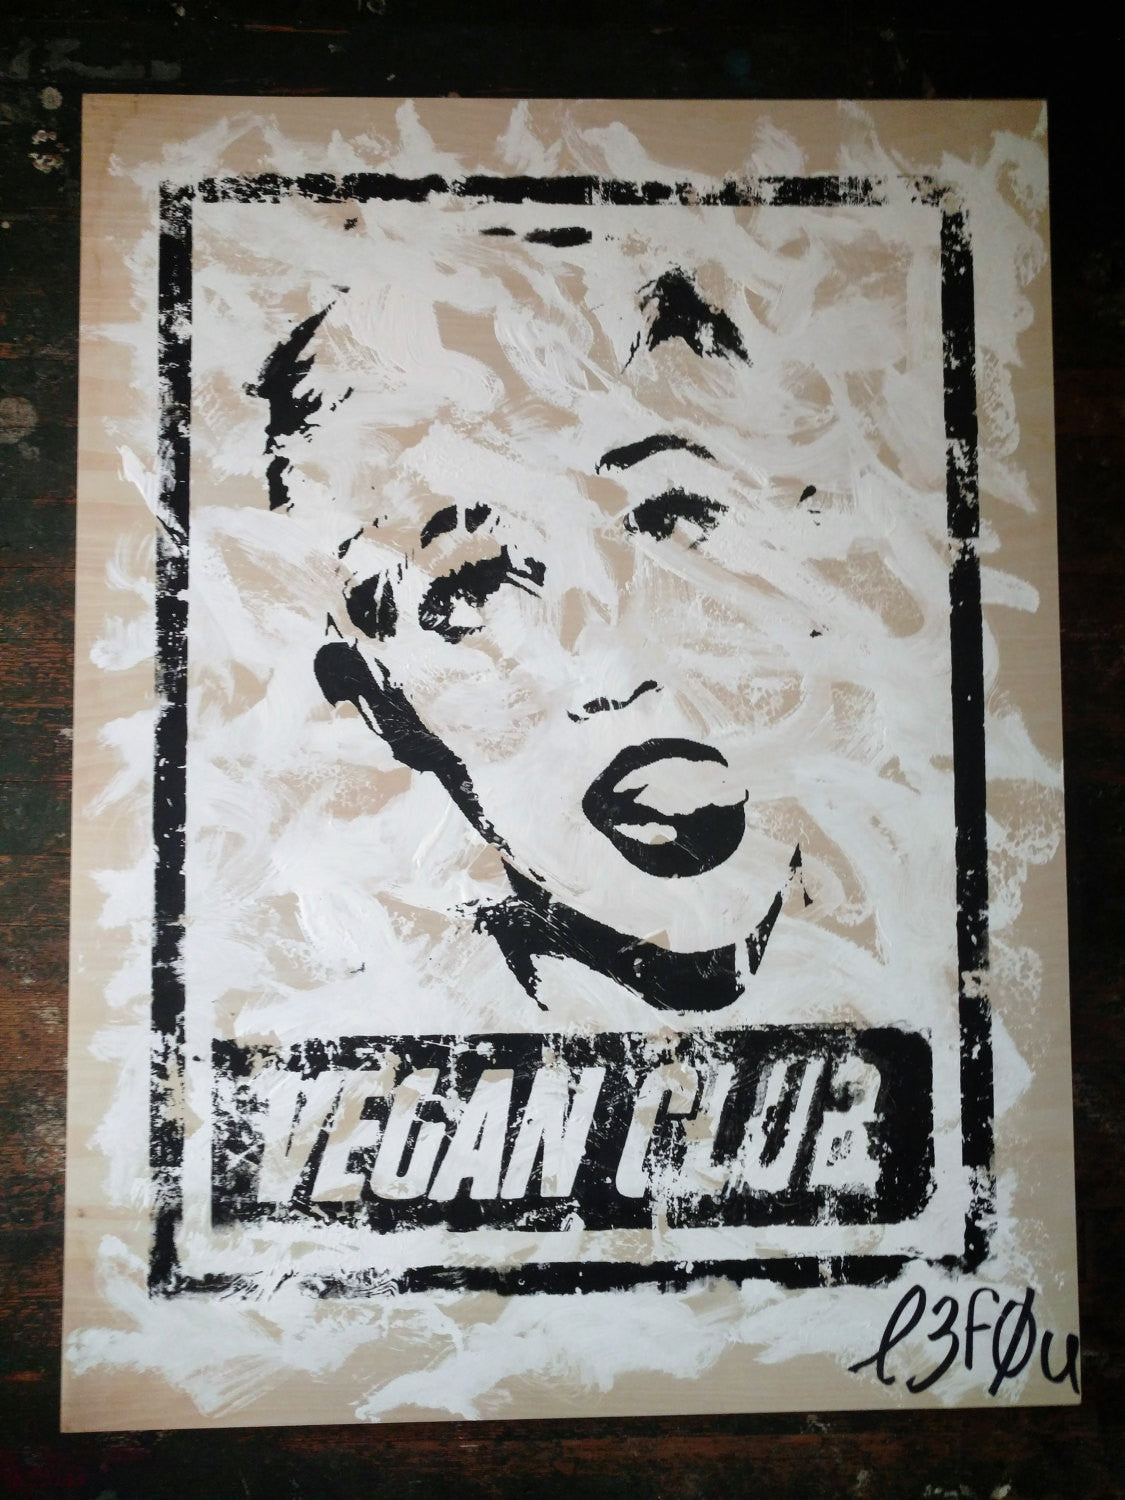 "30x40 Original Artwork ""Vegan Club"" featuring your fav vegan celeb Miley Cyrus signed L3F0u (1 of X)"